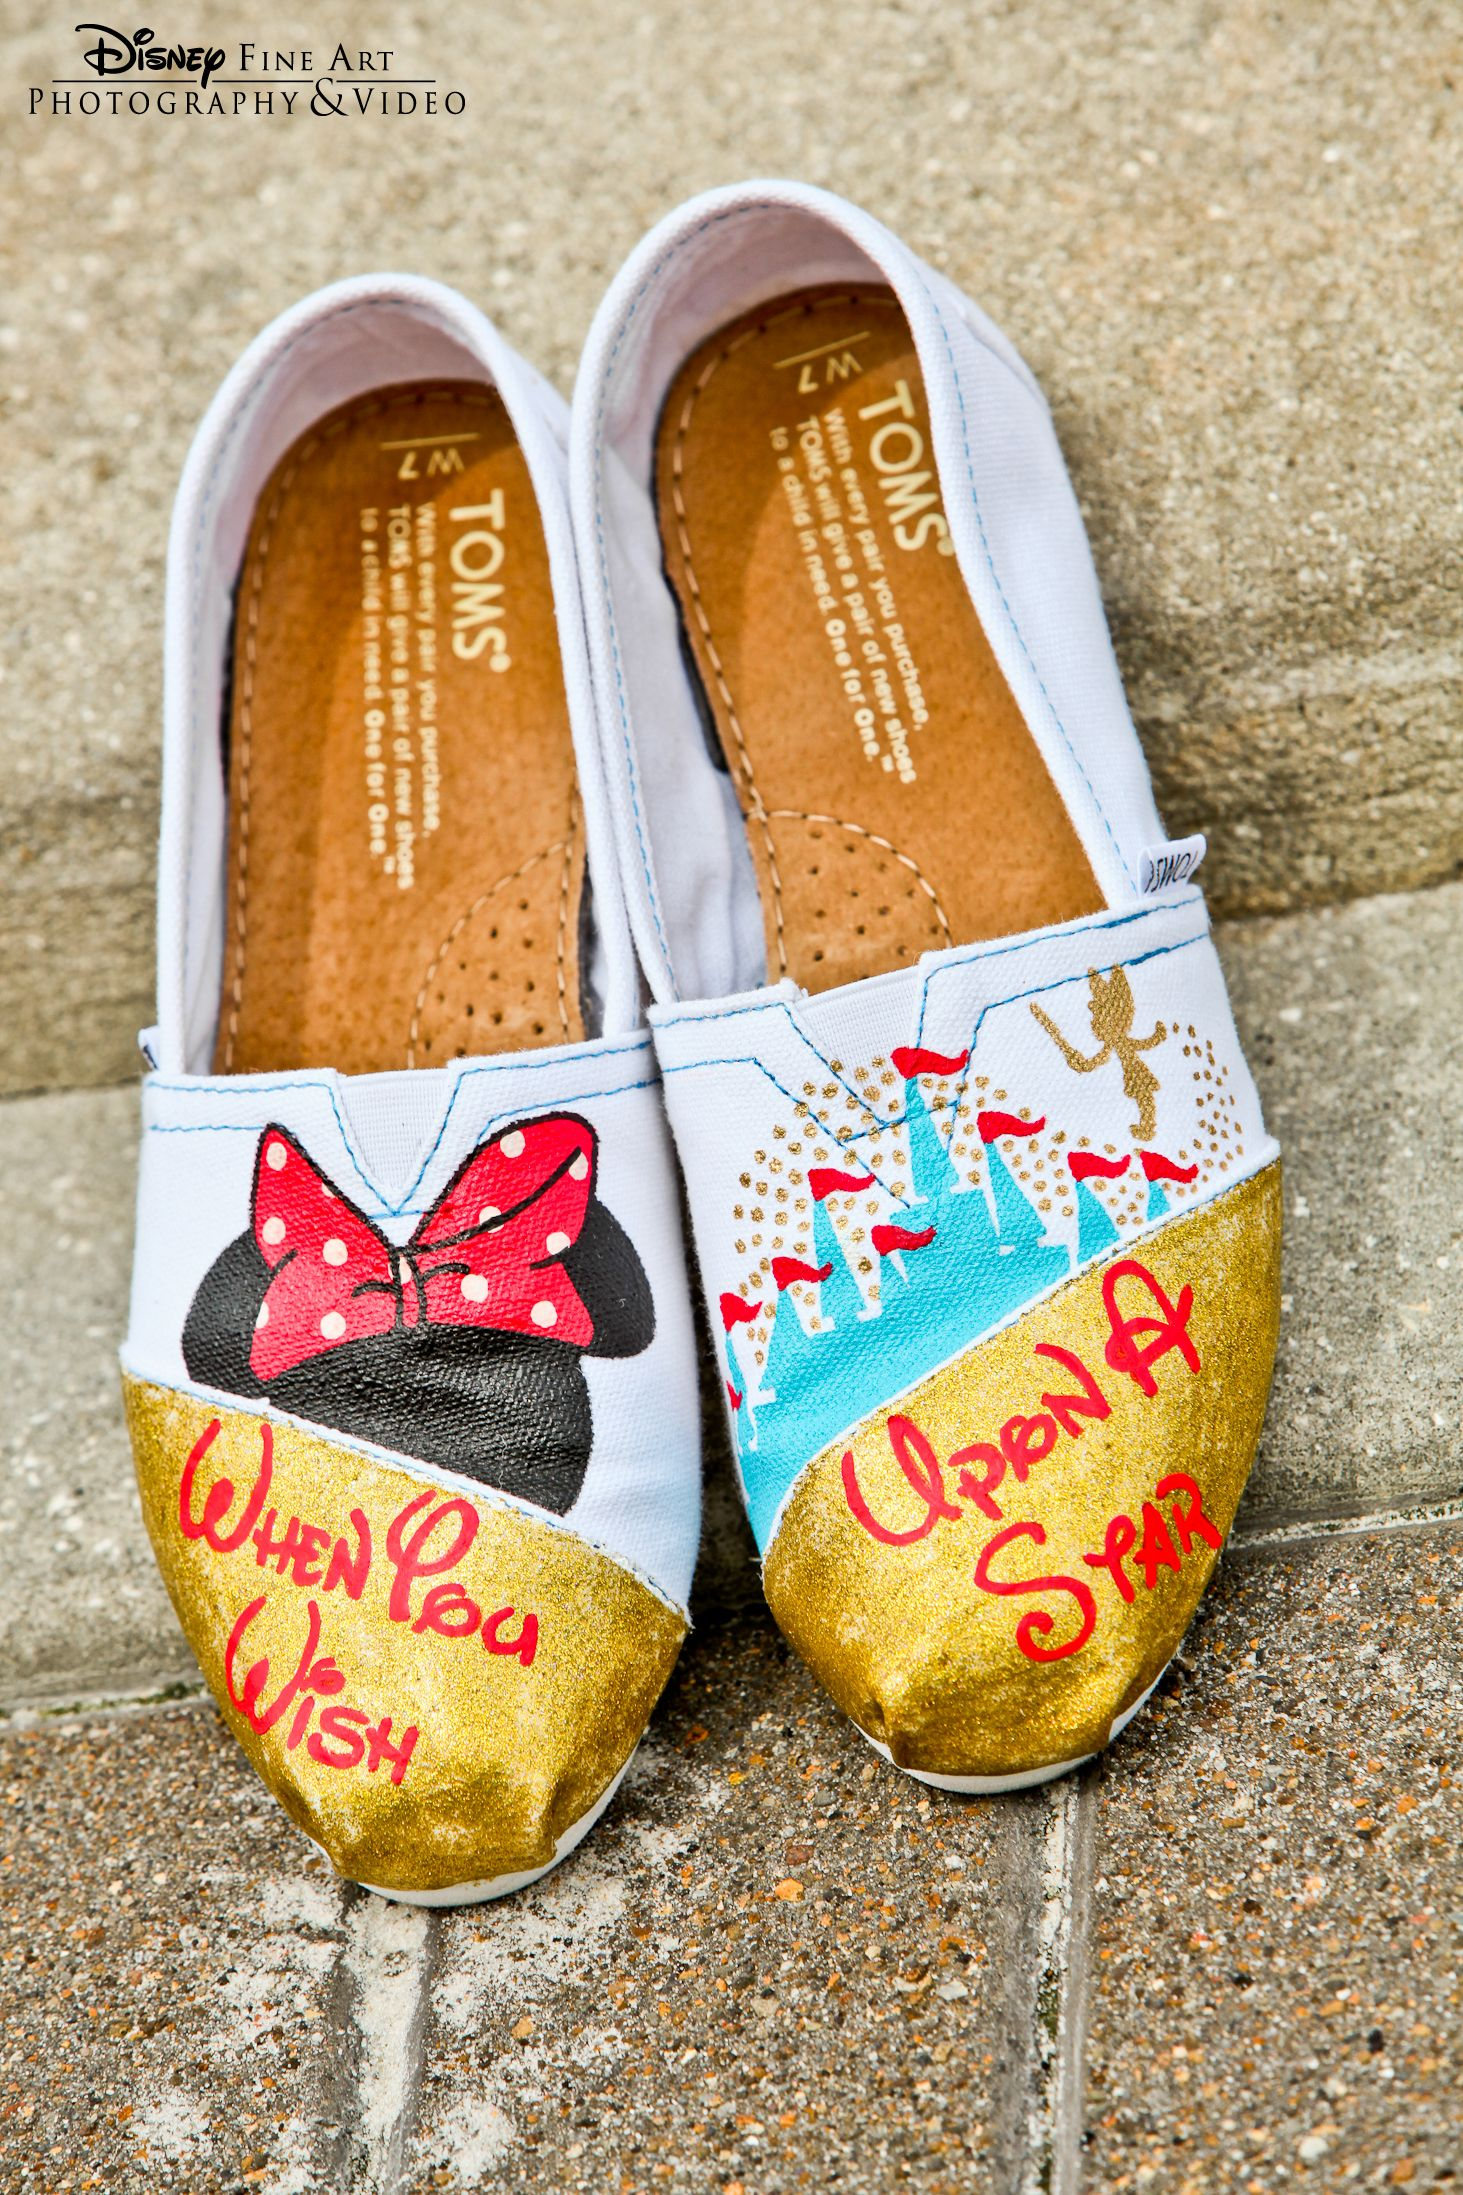 When You Wish Upon A Star Custom Disney Inspired Toms Shoes Disney Wedding Toms Noi Divat Cipok Divat